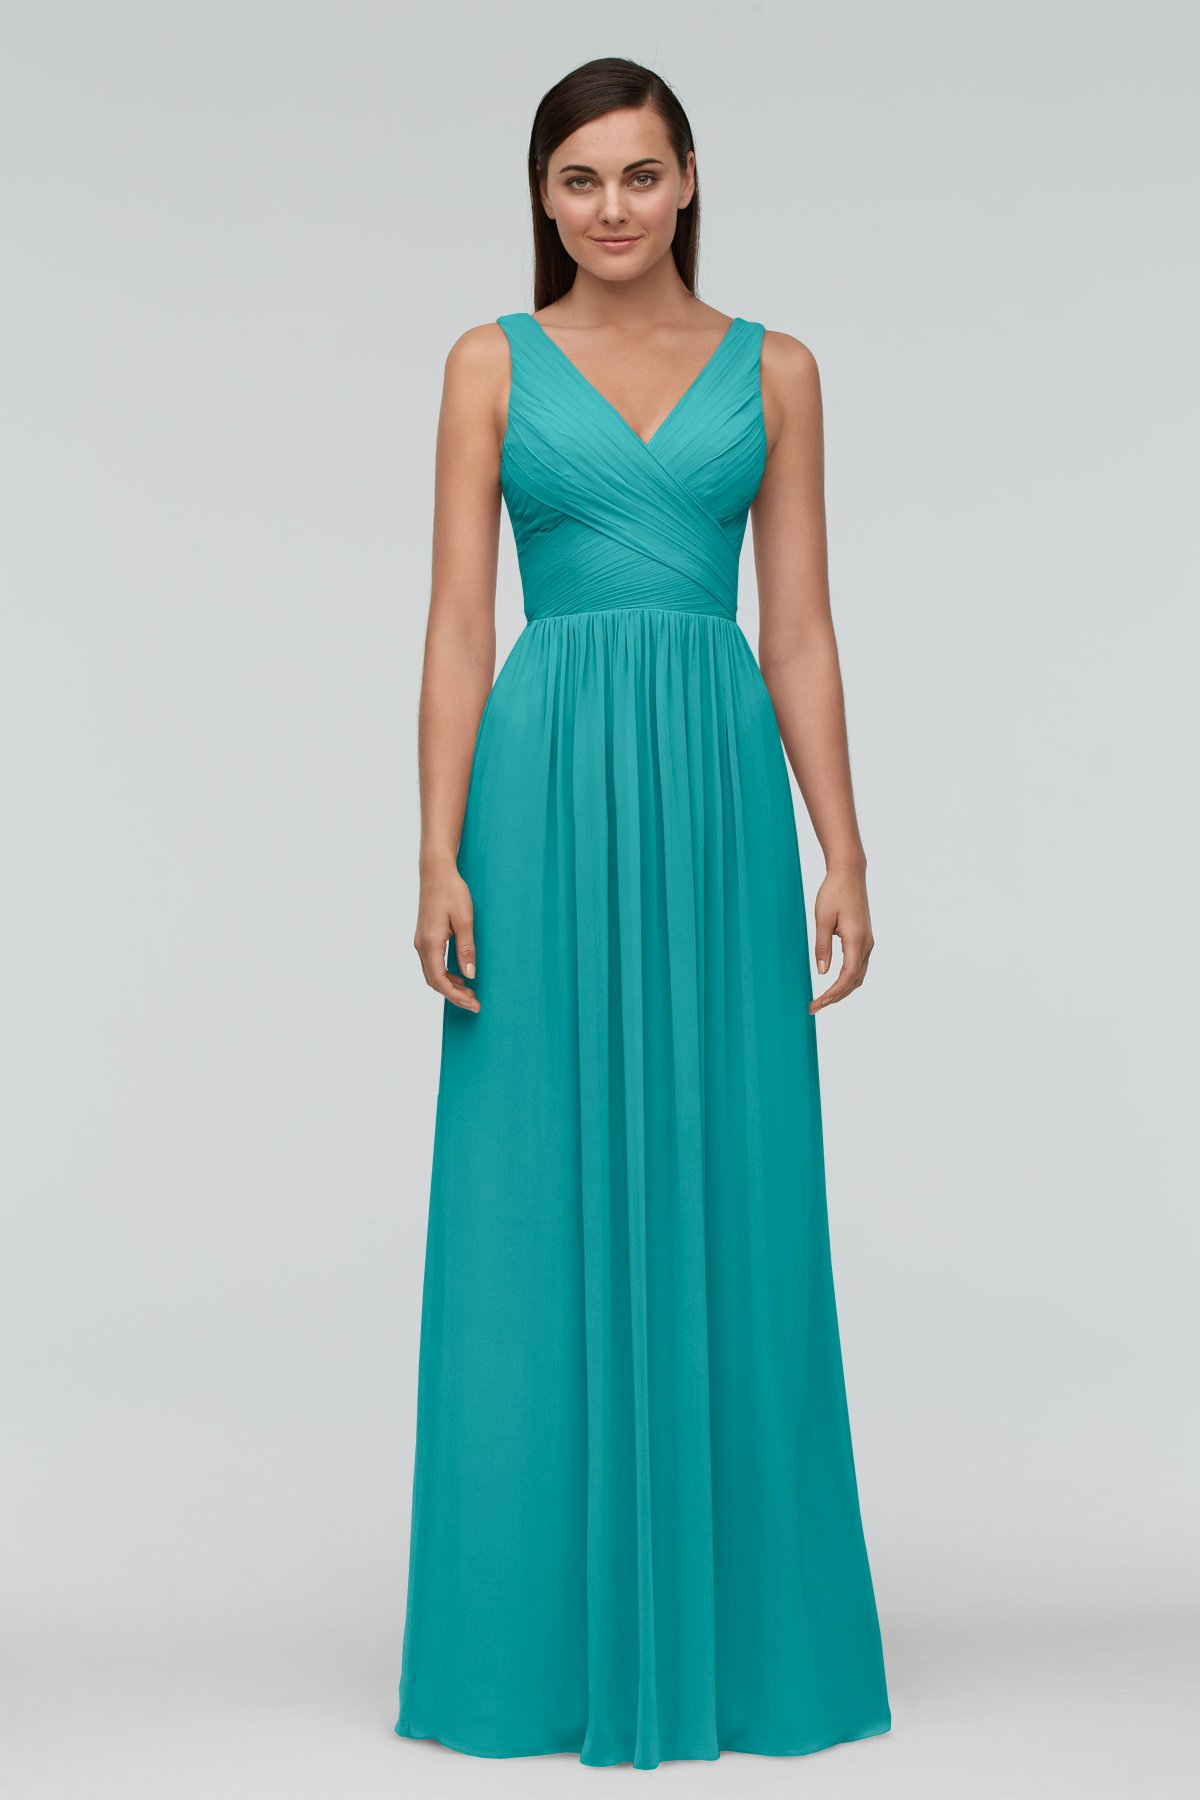 Aqua Green Long Deep V Bridesmaid Dress